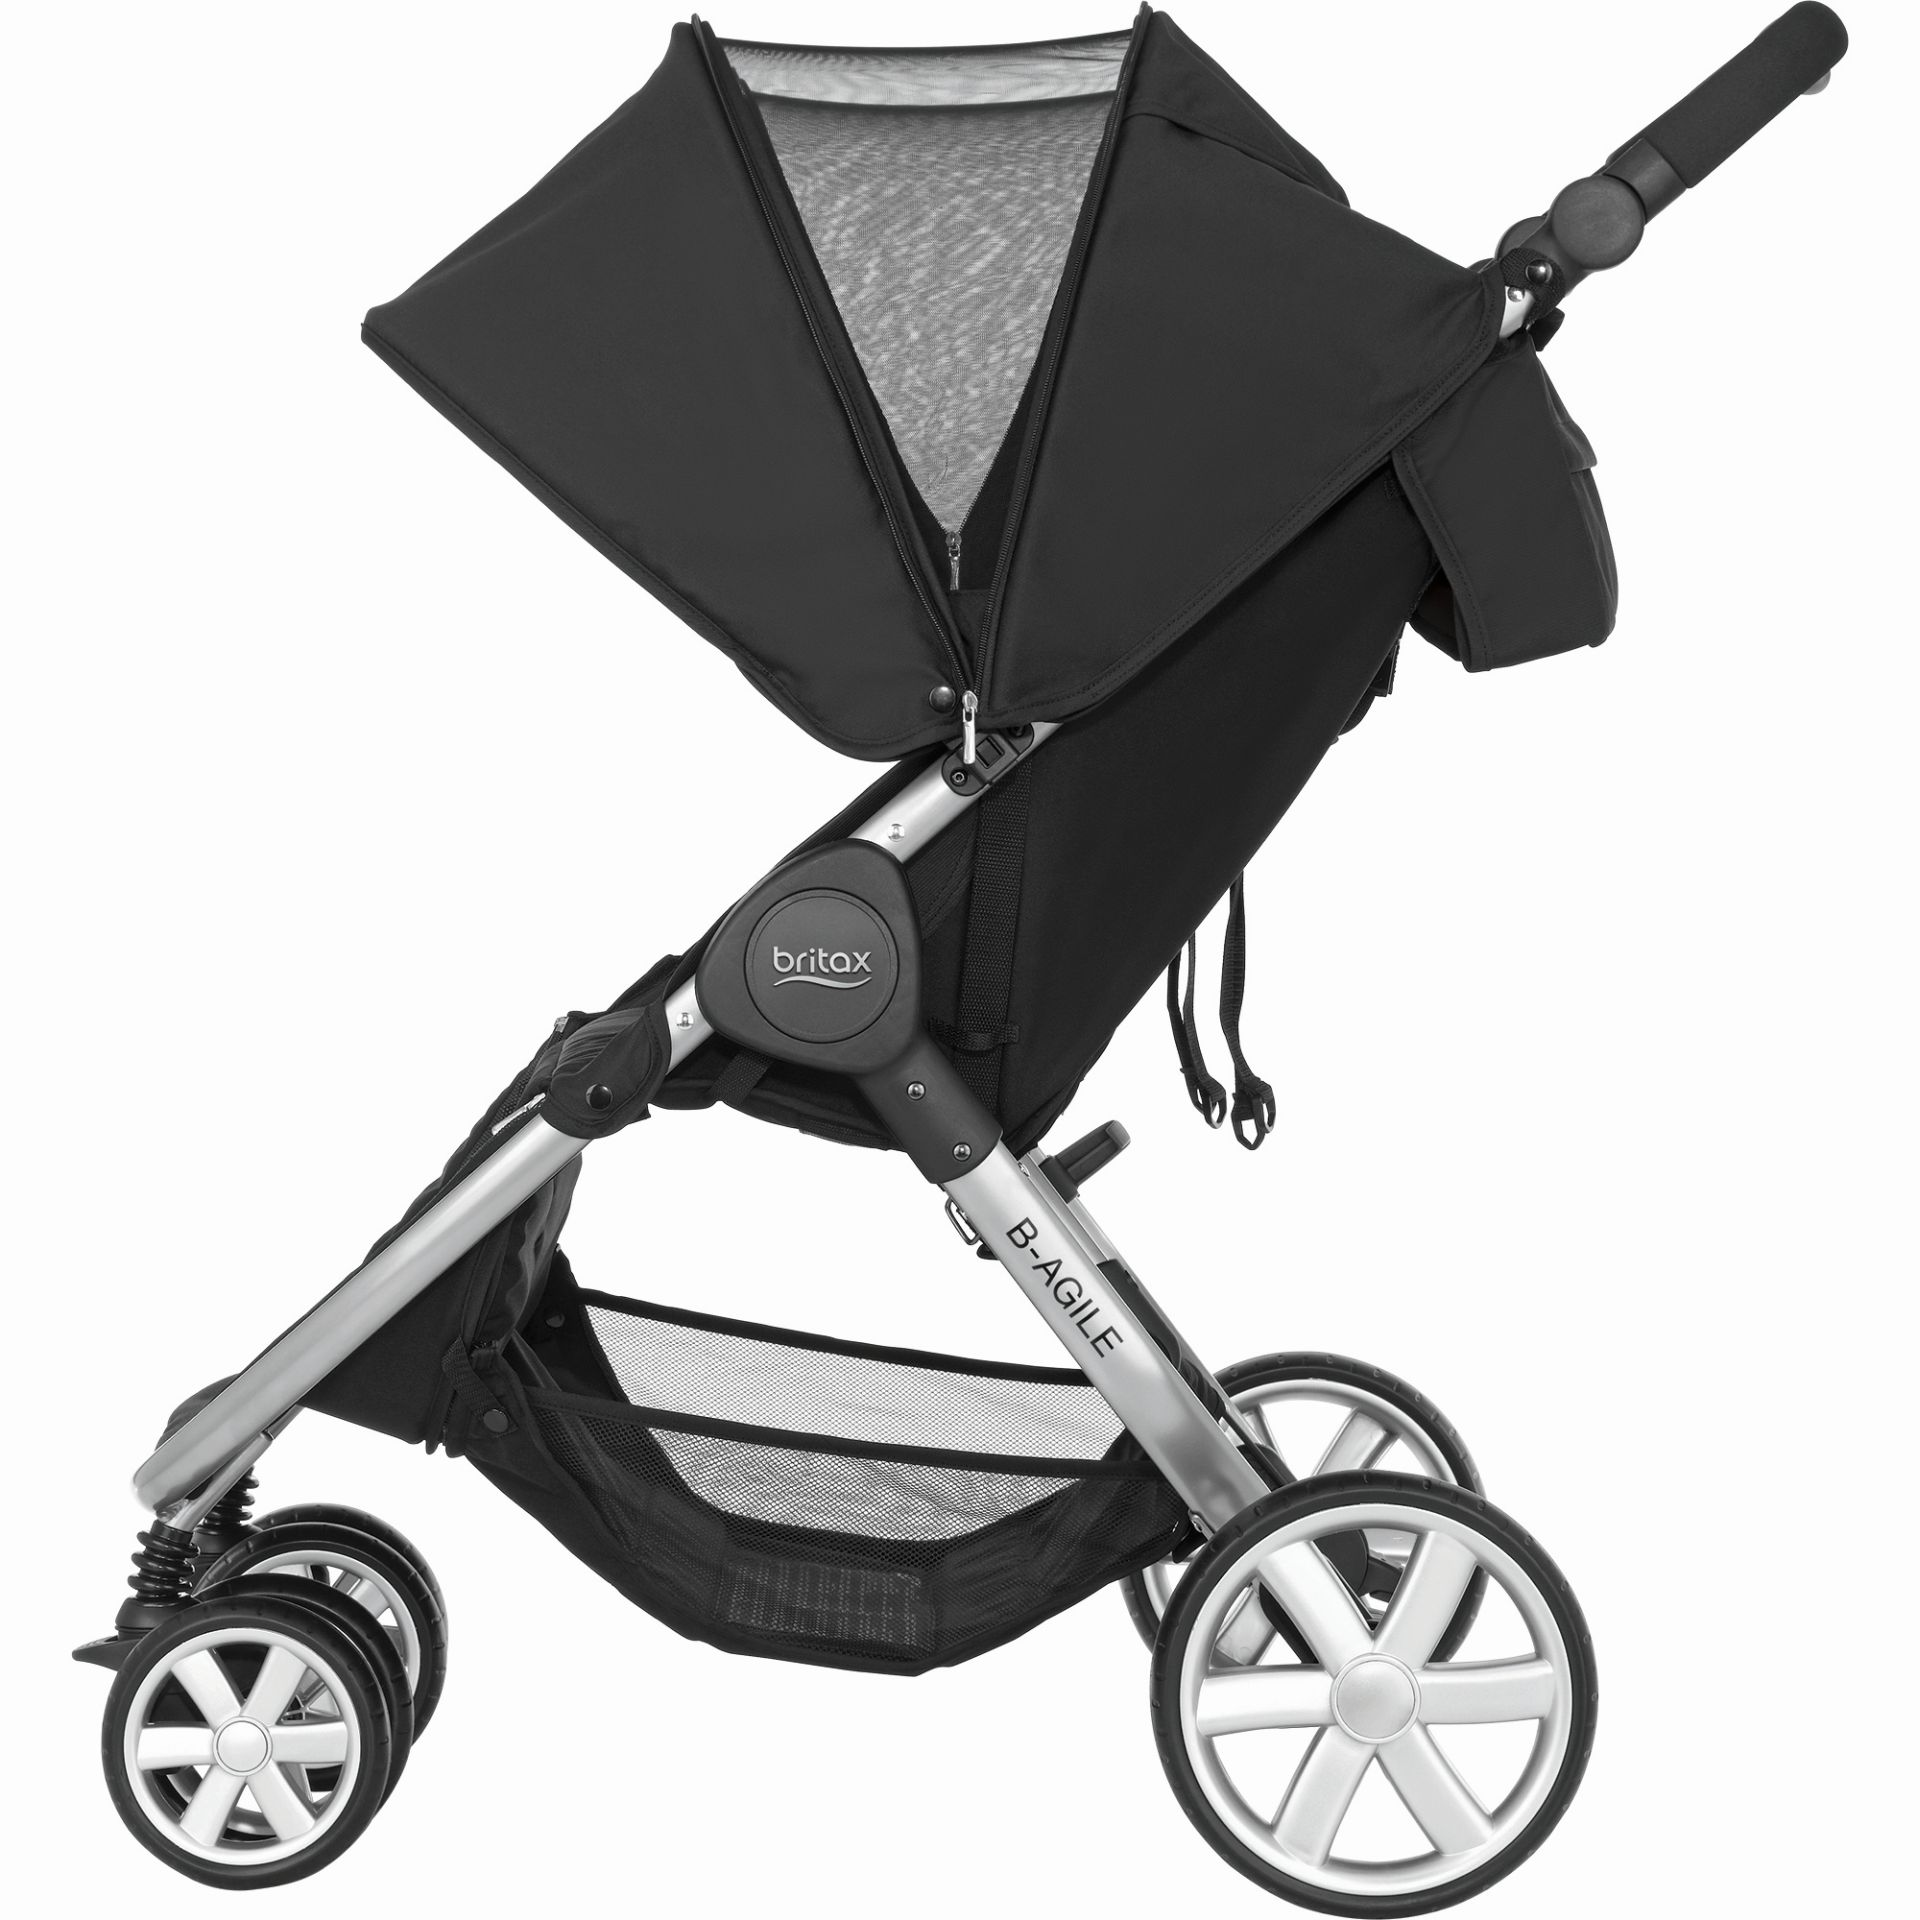 Britax Römer B AGILE DOUBLE Steel Grey 2018 large image 3